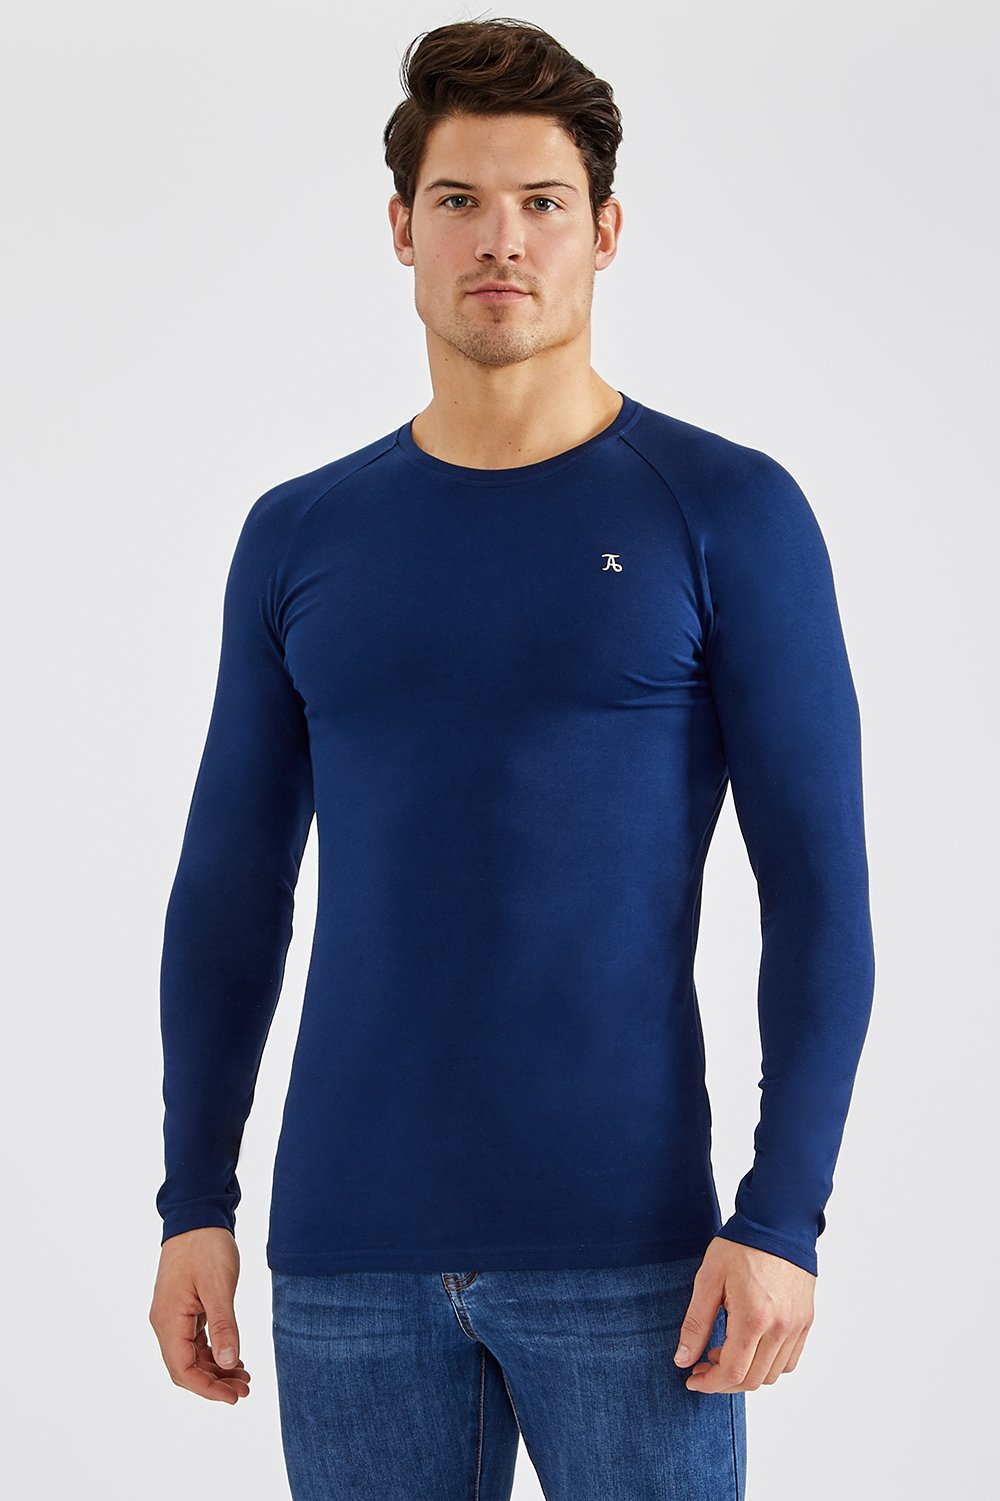 Essential T-Shirt (LS) in Navy